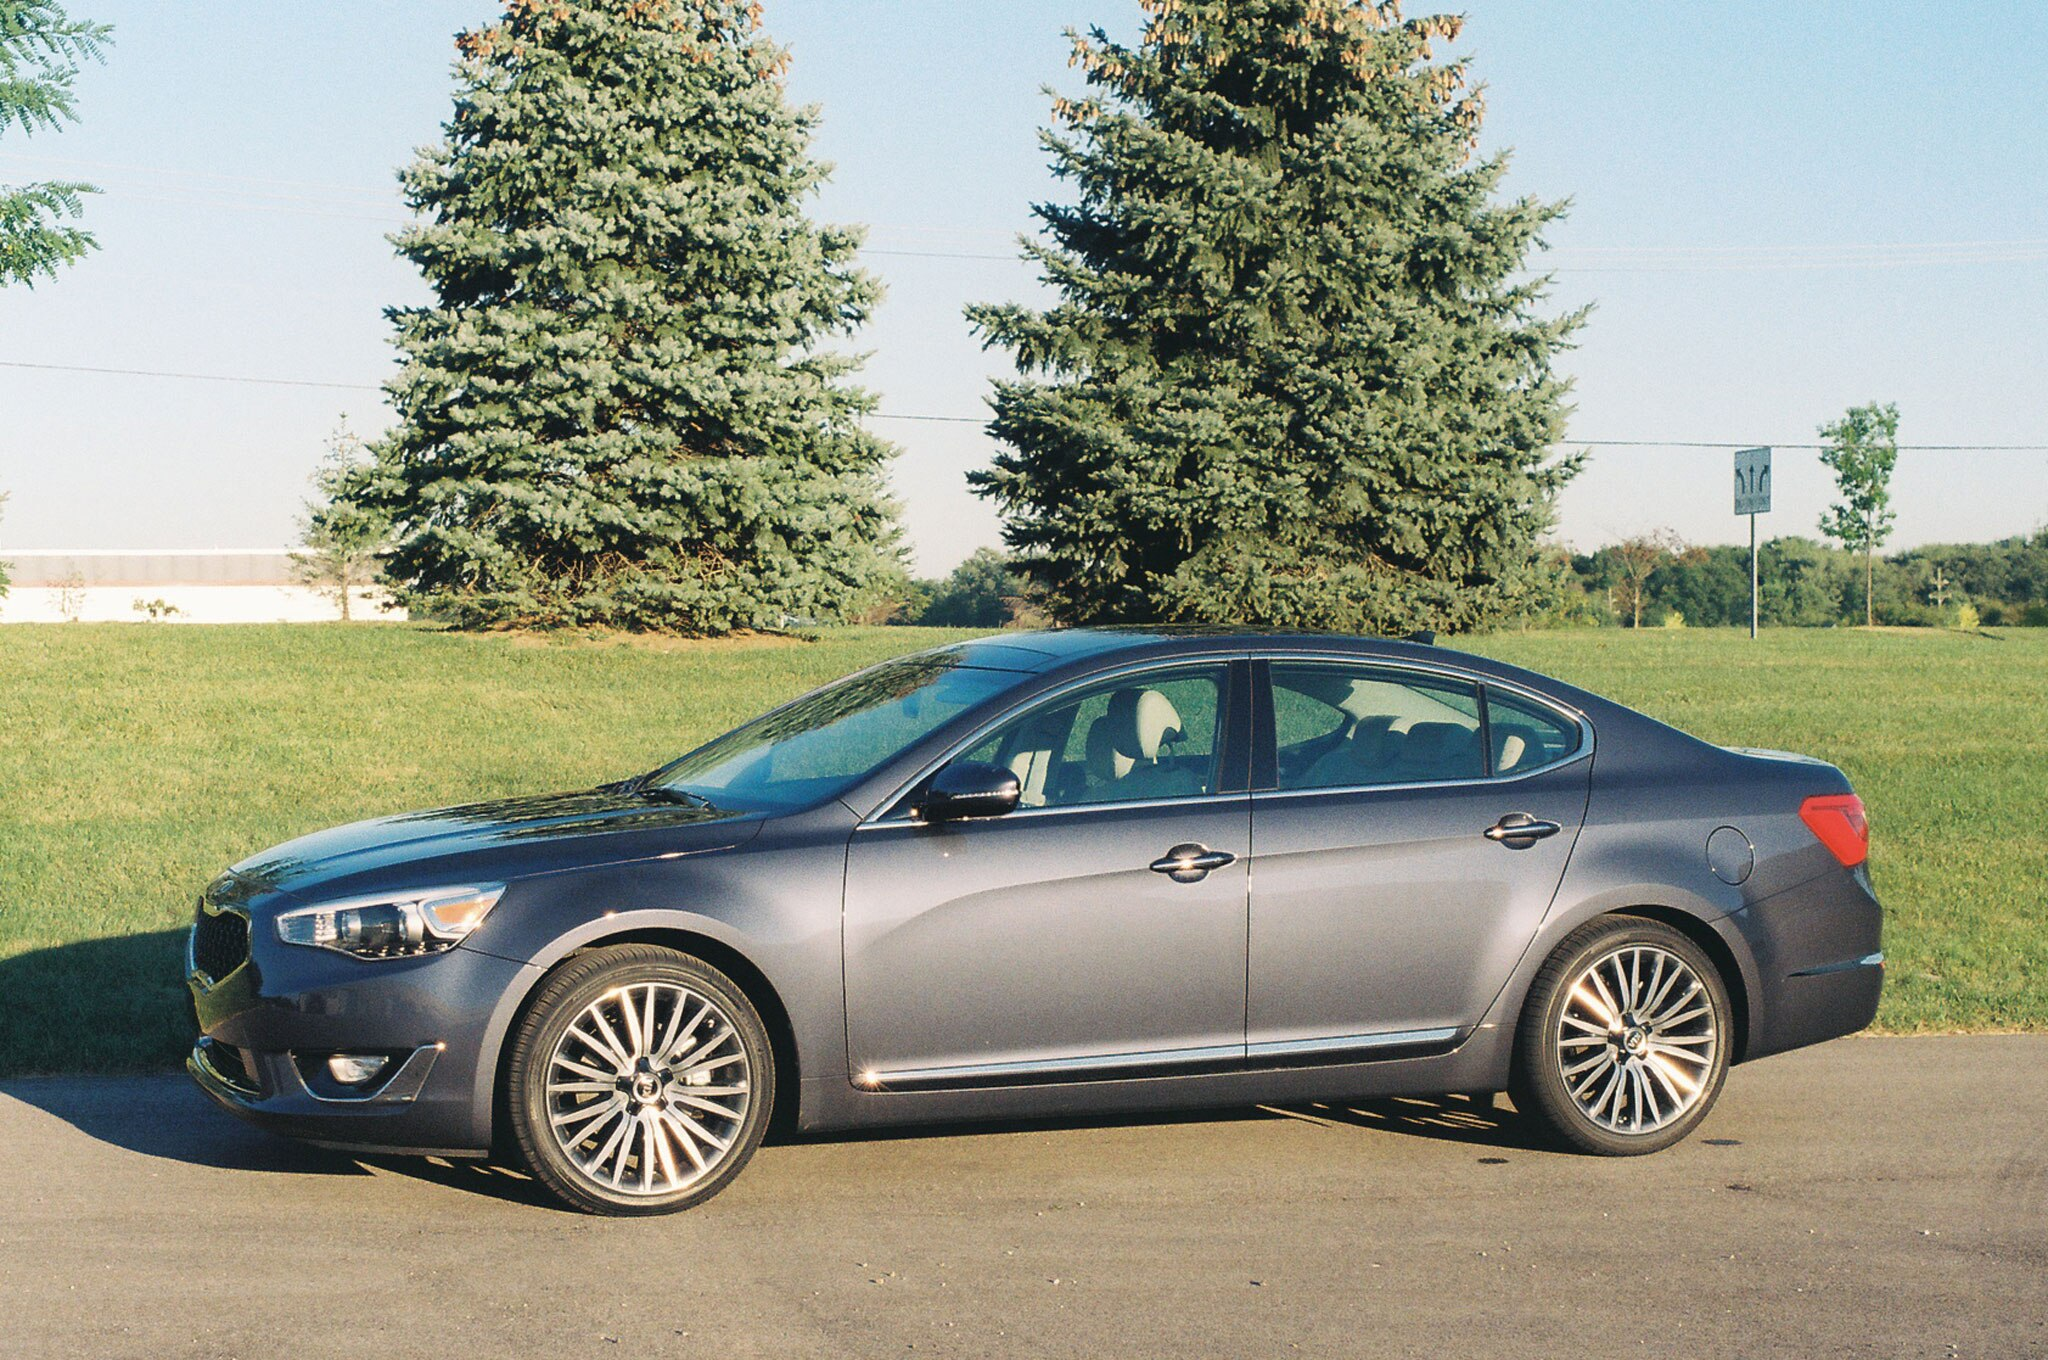 2014 Kia Cadenza Front Left Side View1